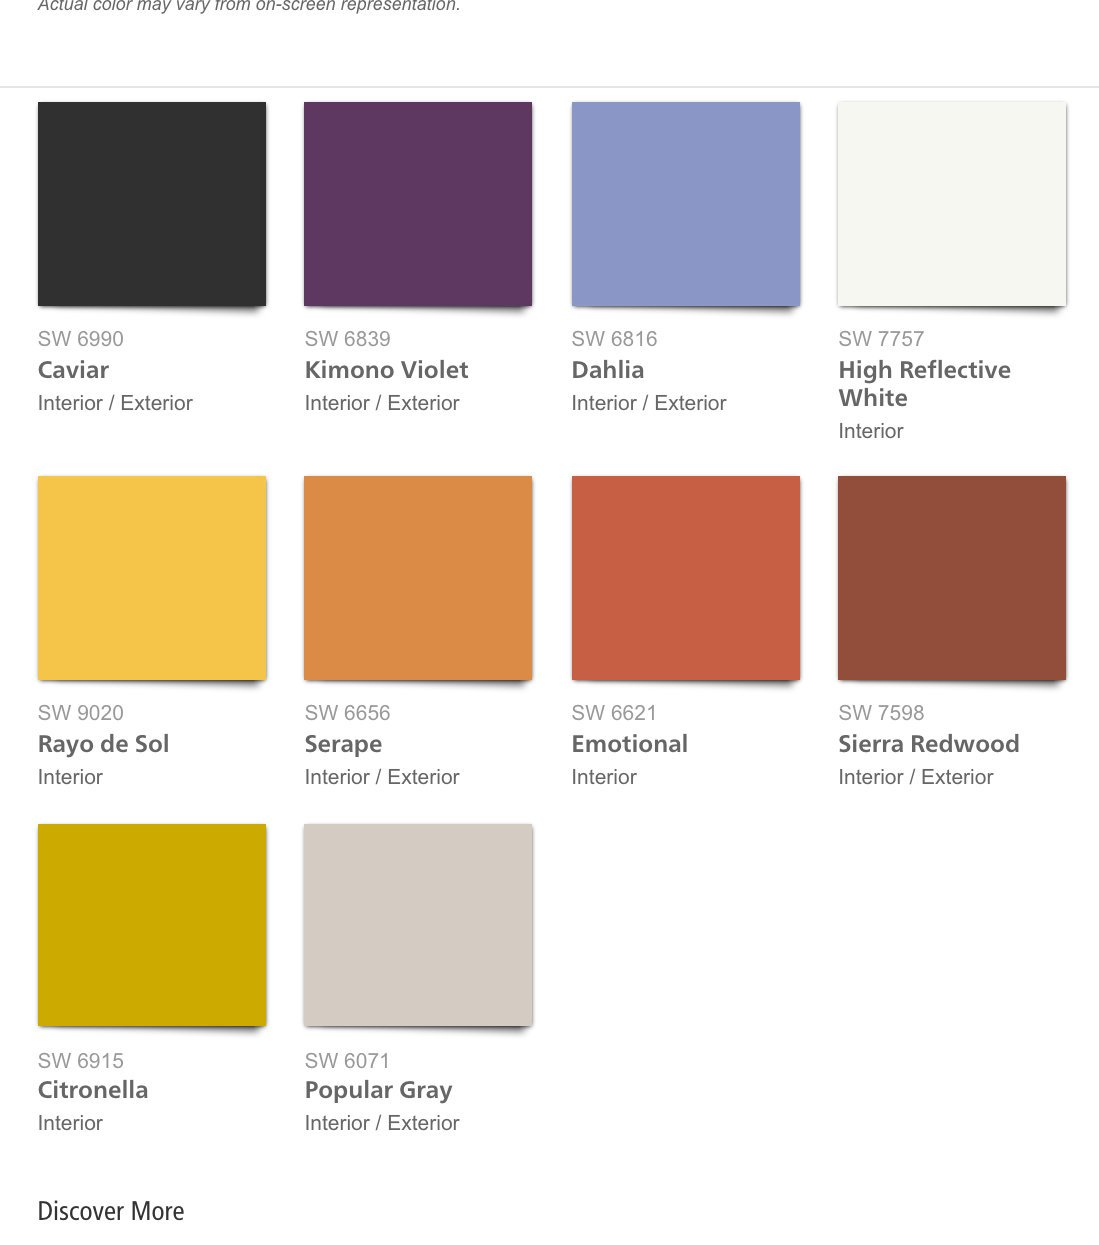 Wandgestaltung Mit Farbe 30 Nuancen Blau further Bathroom Paint Colors besides Benjamin Moore Color Trends 2016 also Grey Living Room Wall Paint Colors besides Light Coral Color Pantone. on benjamin moore color trends 2017